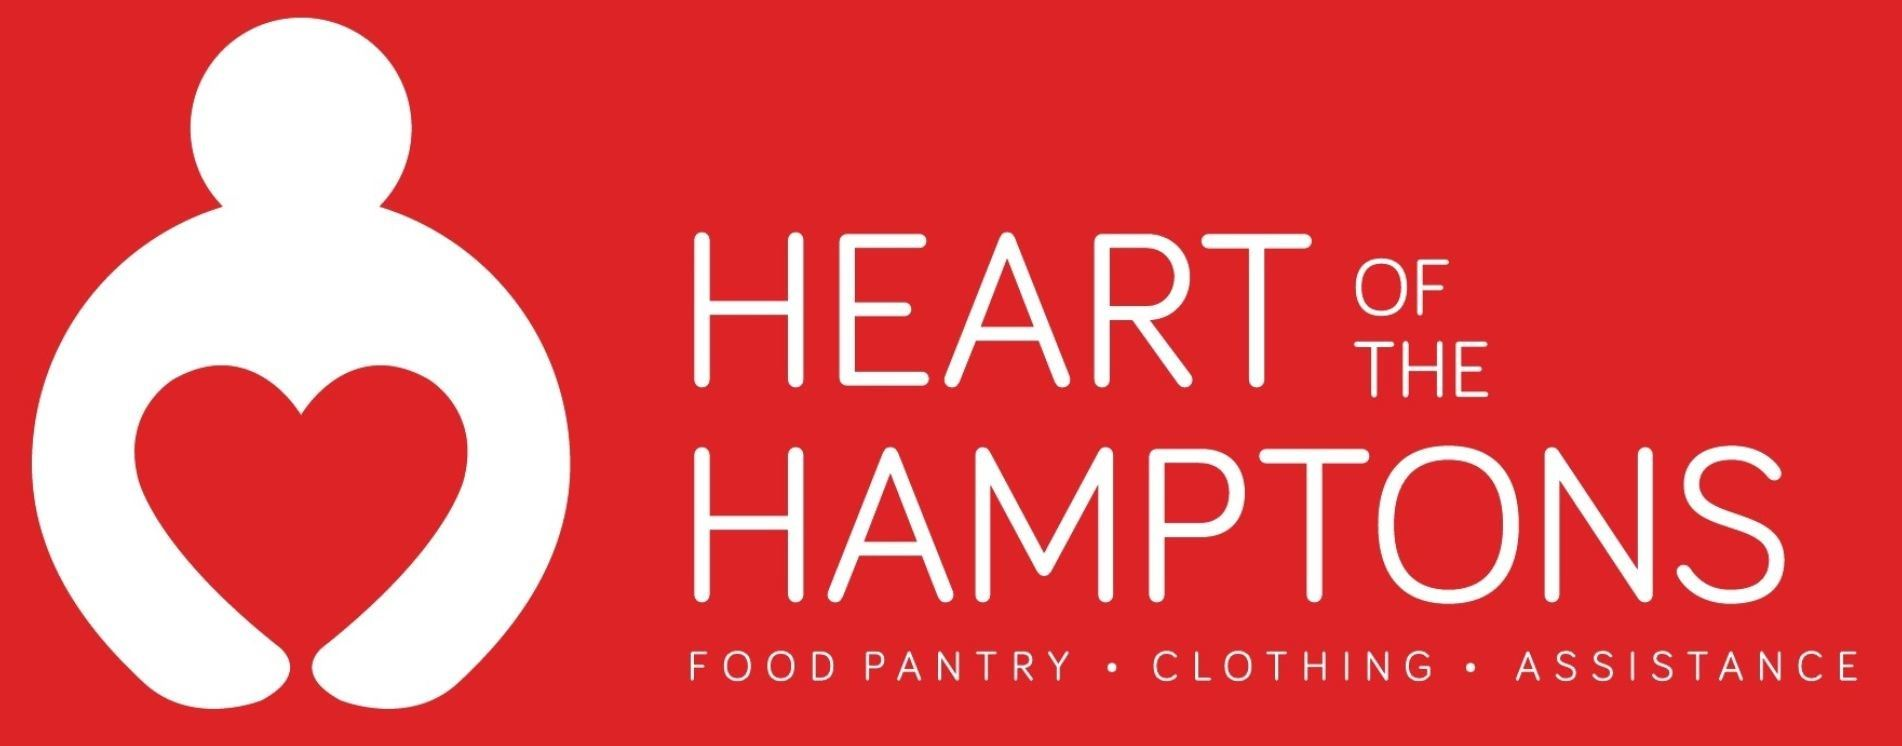 image of Heart of the Hamptons COVID19 flyer